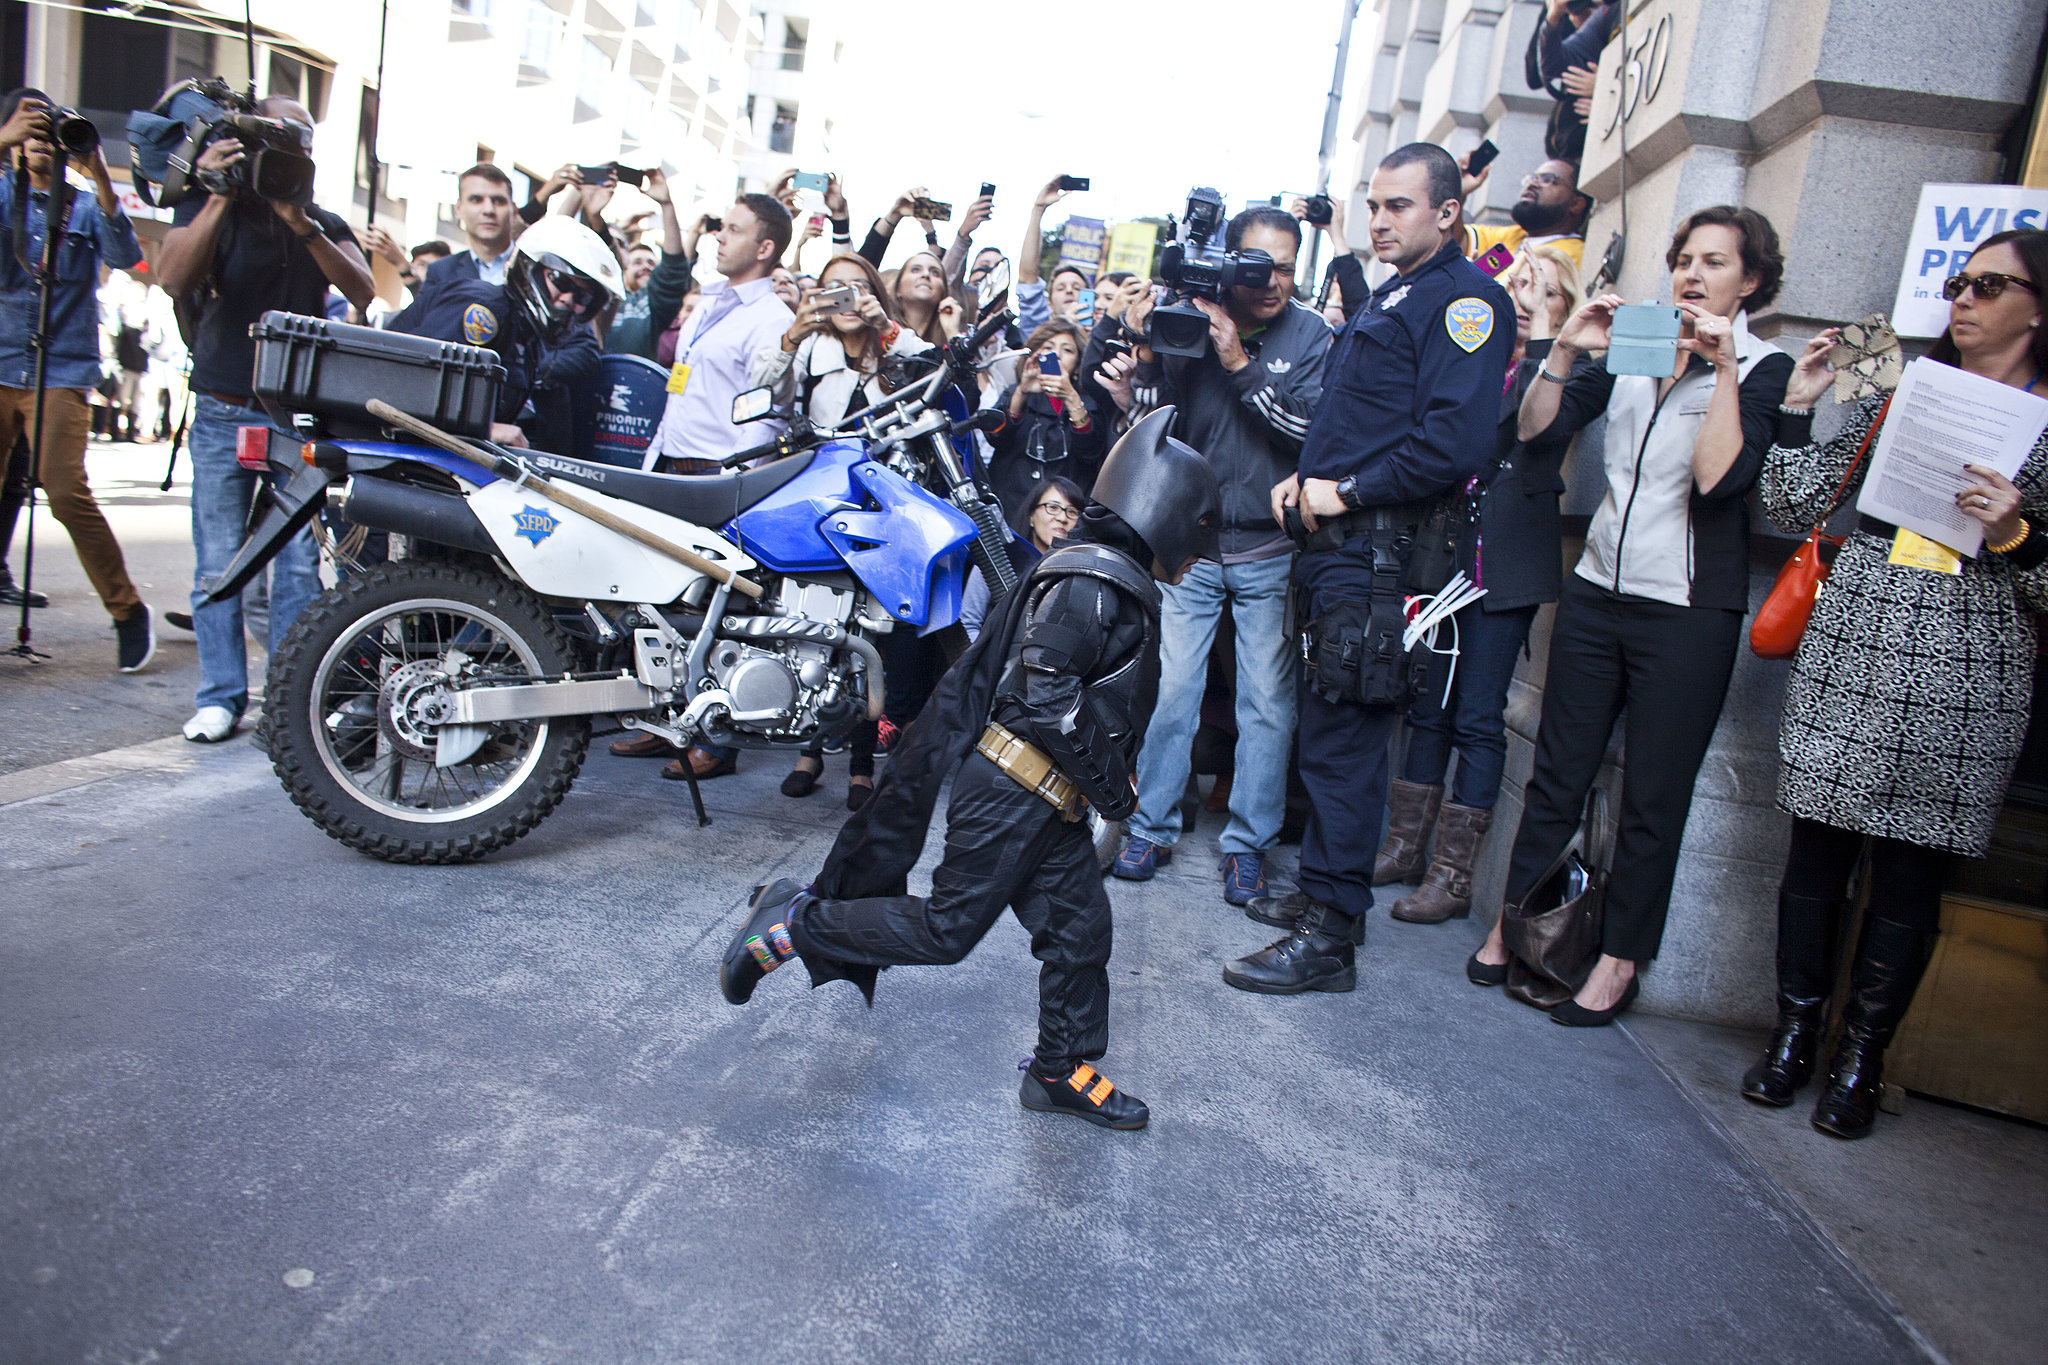 Batkid rushed inside the f